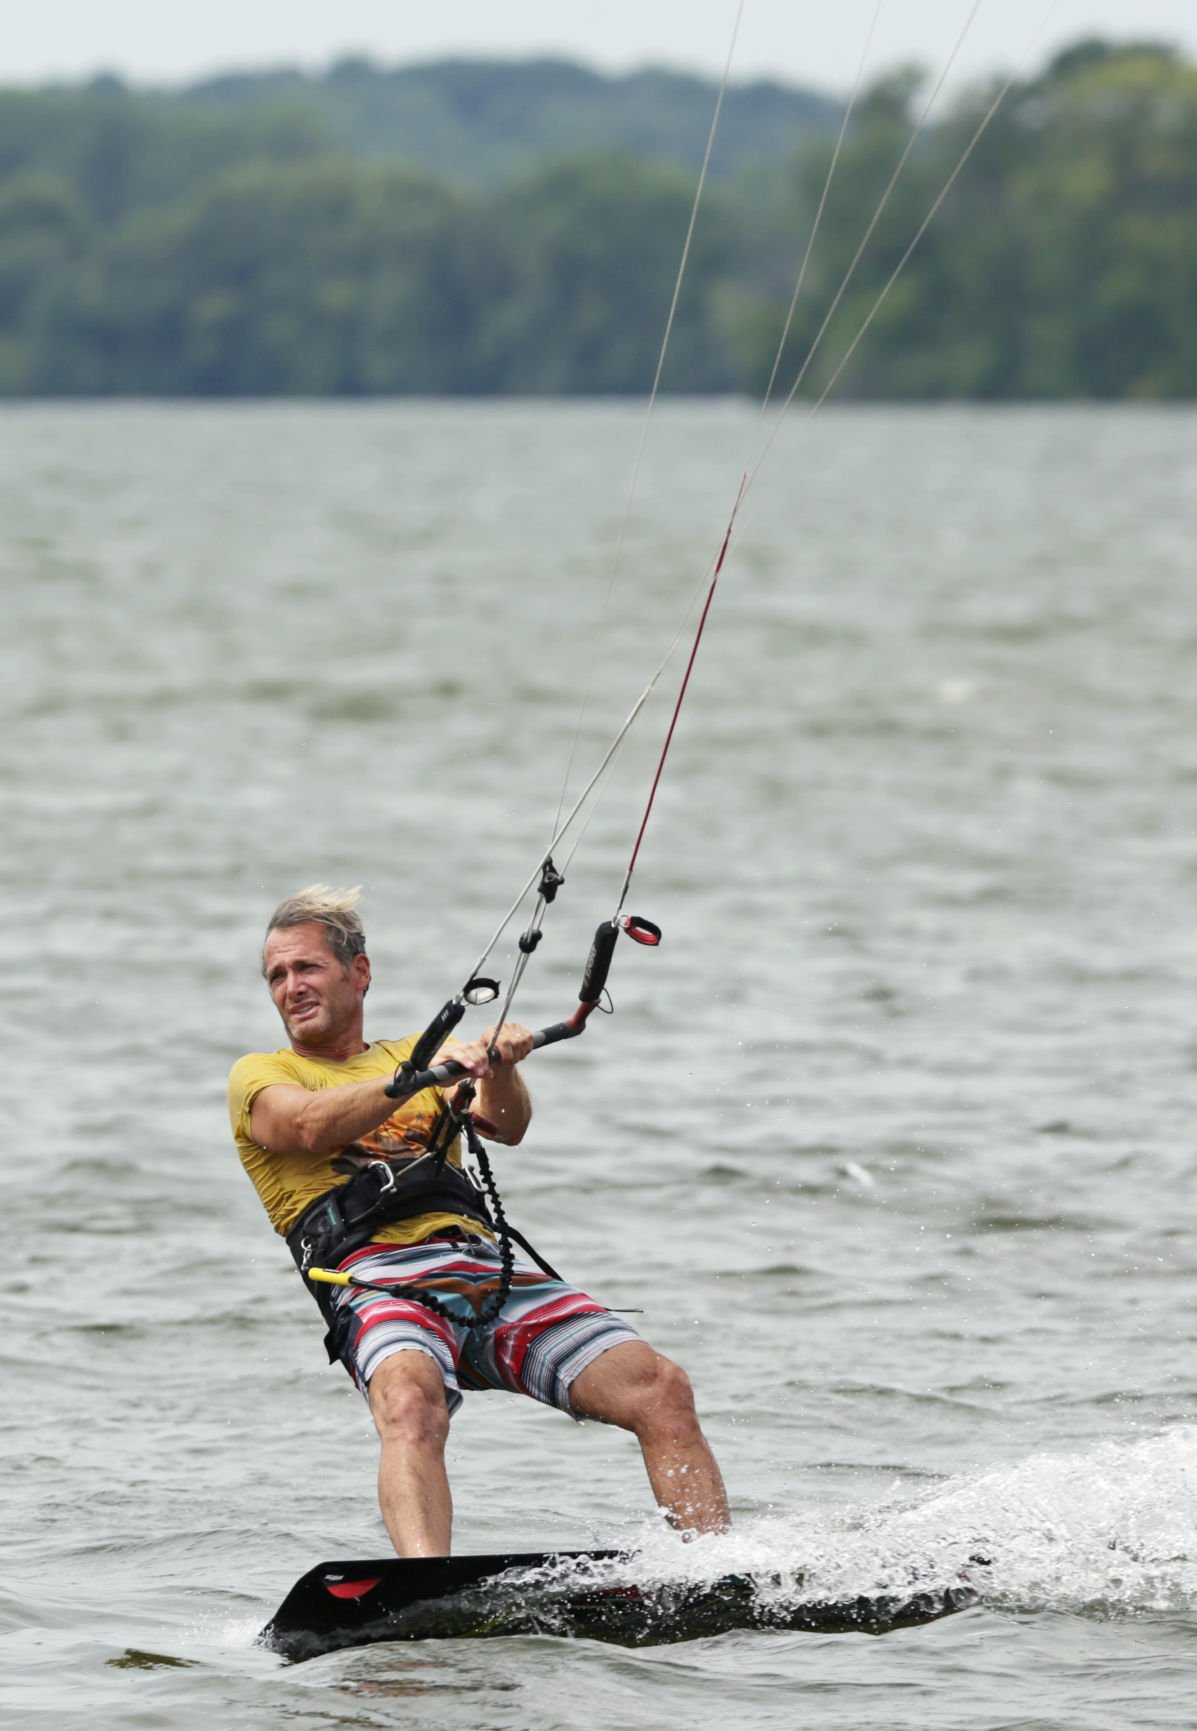 Kiteboarding on Lake Waubesa